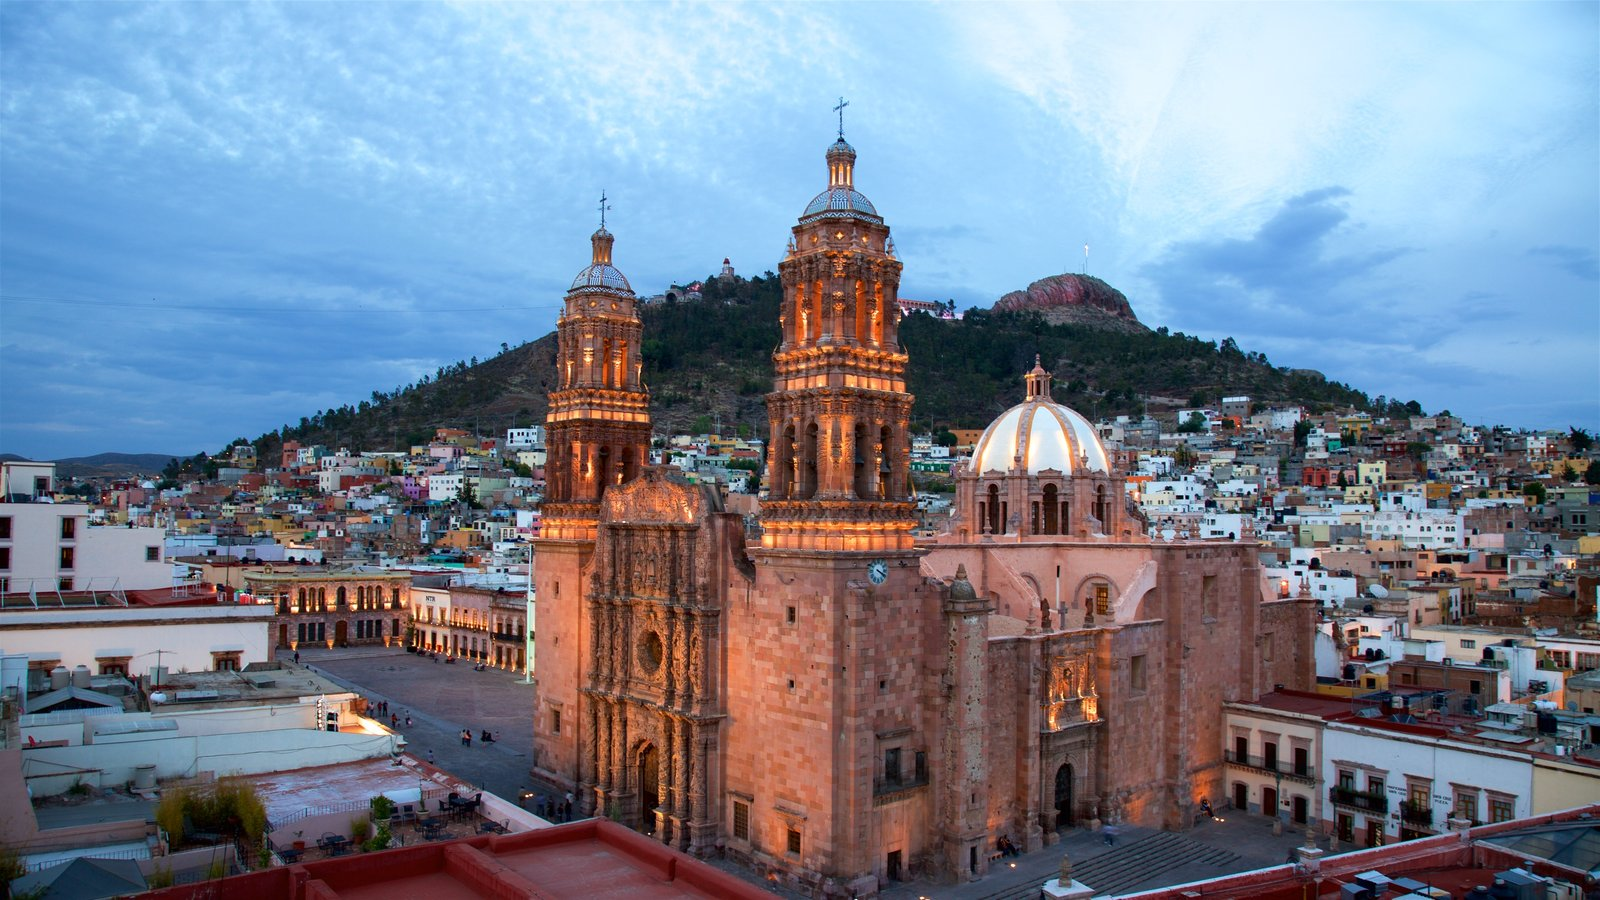 Mexico, Zacatecas, Cathedral